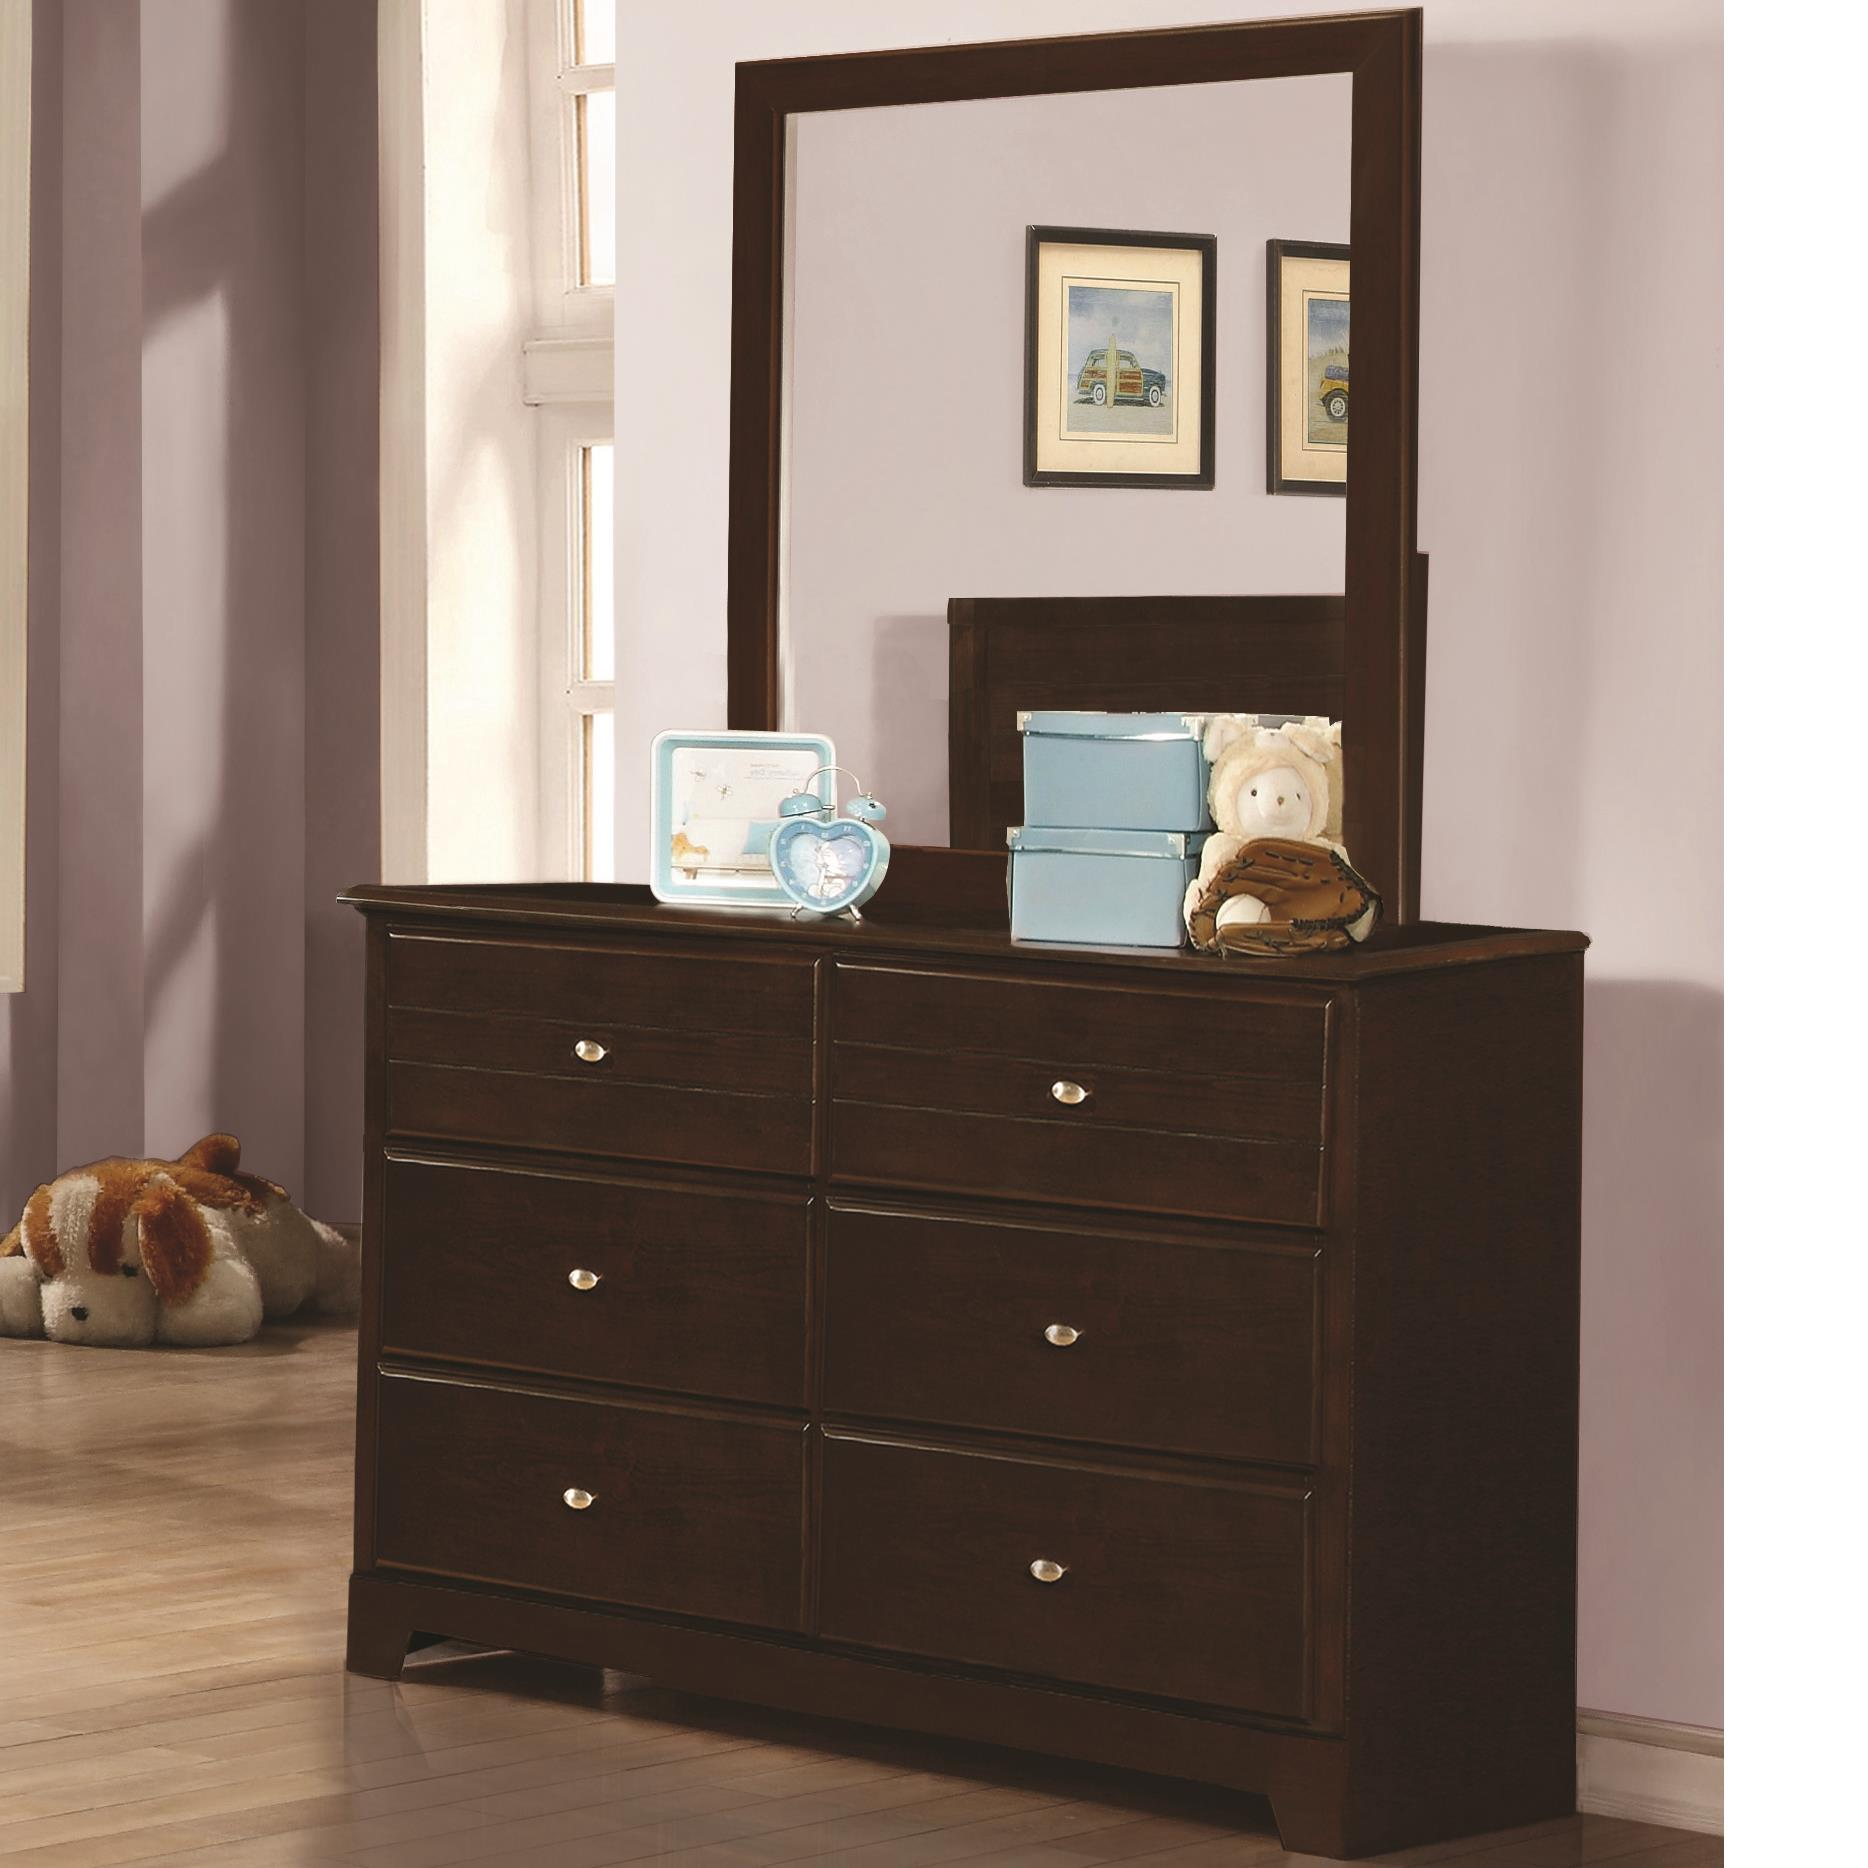 Coaster Ashton Collection Dresser and Mirror - Item Number: 400773+400774